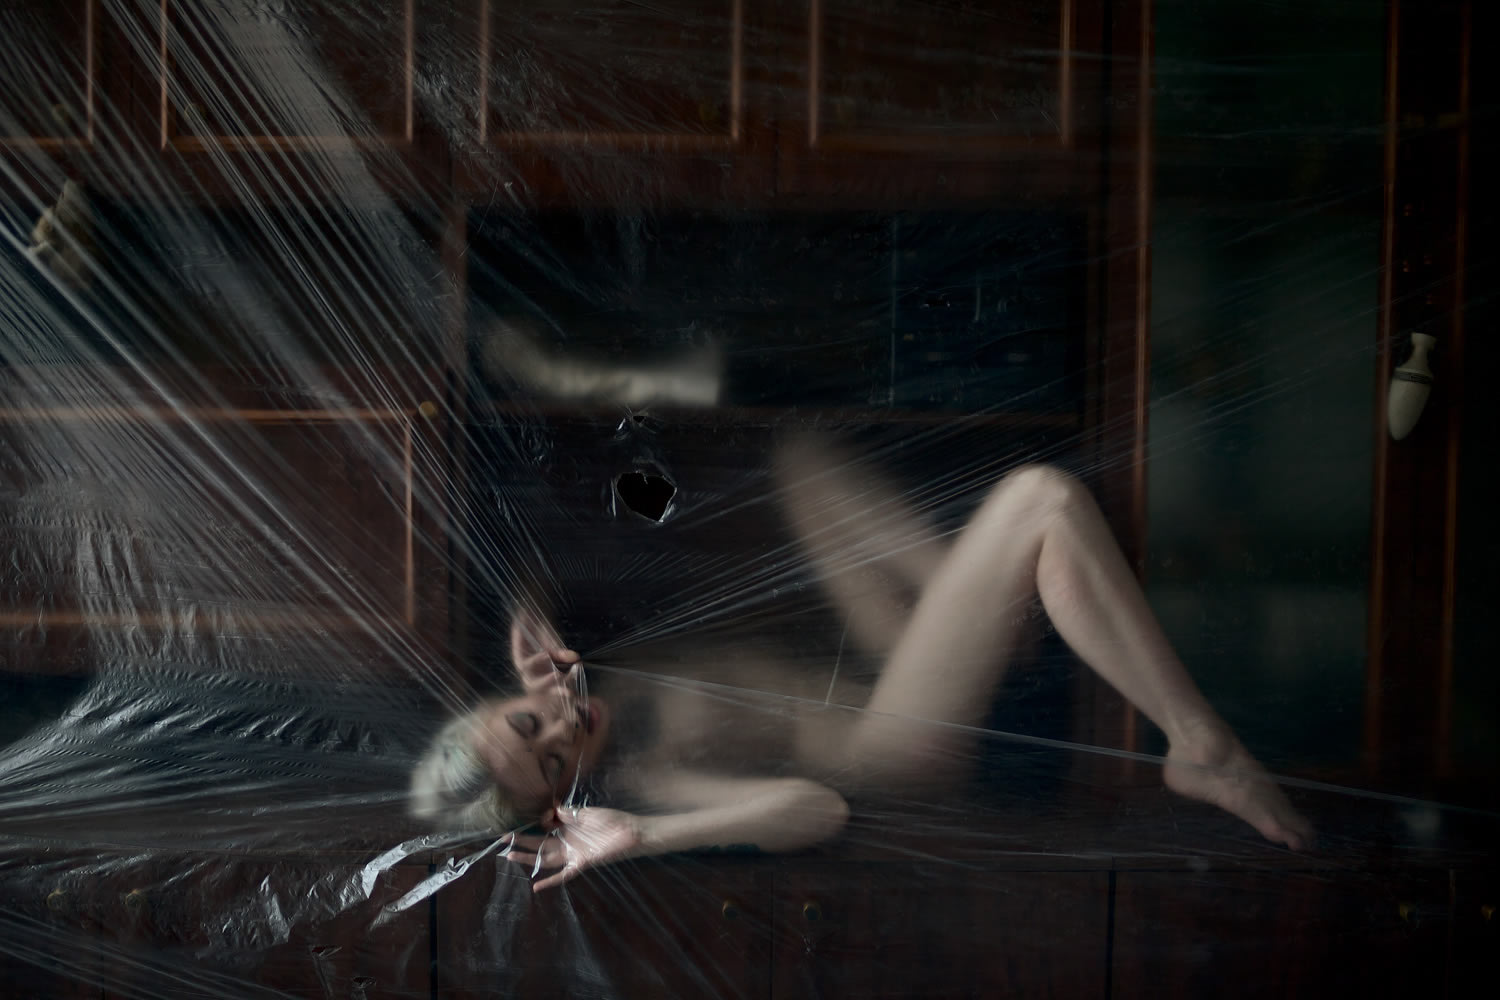 plastic sheeting over nude woman